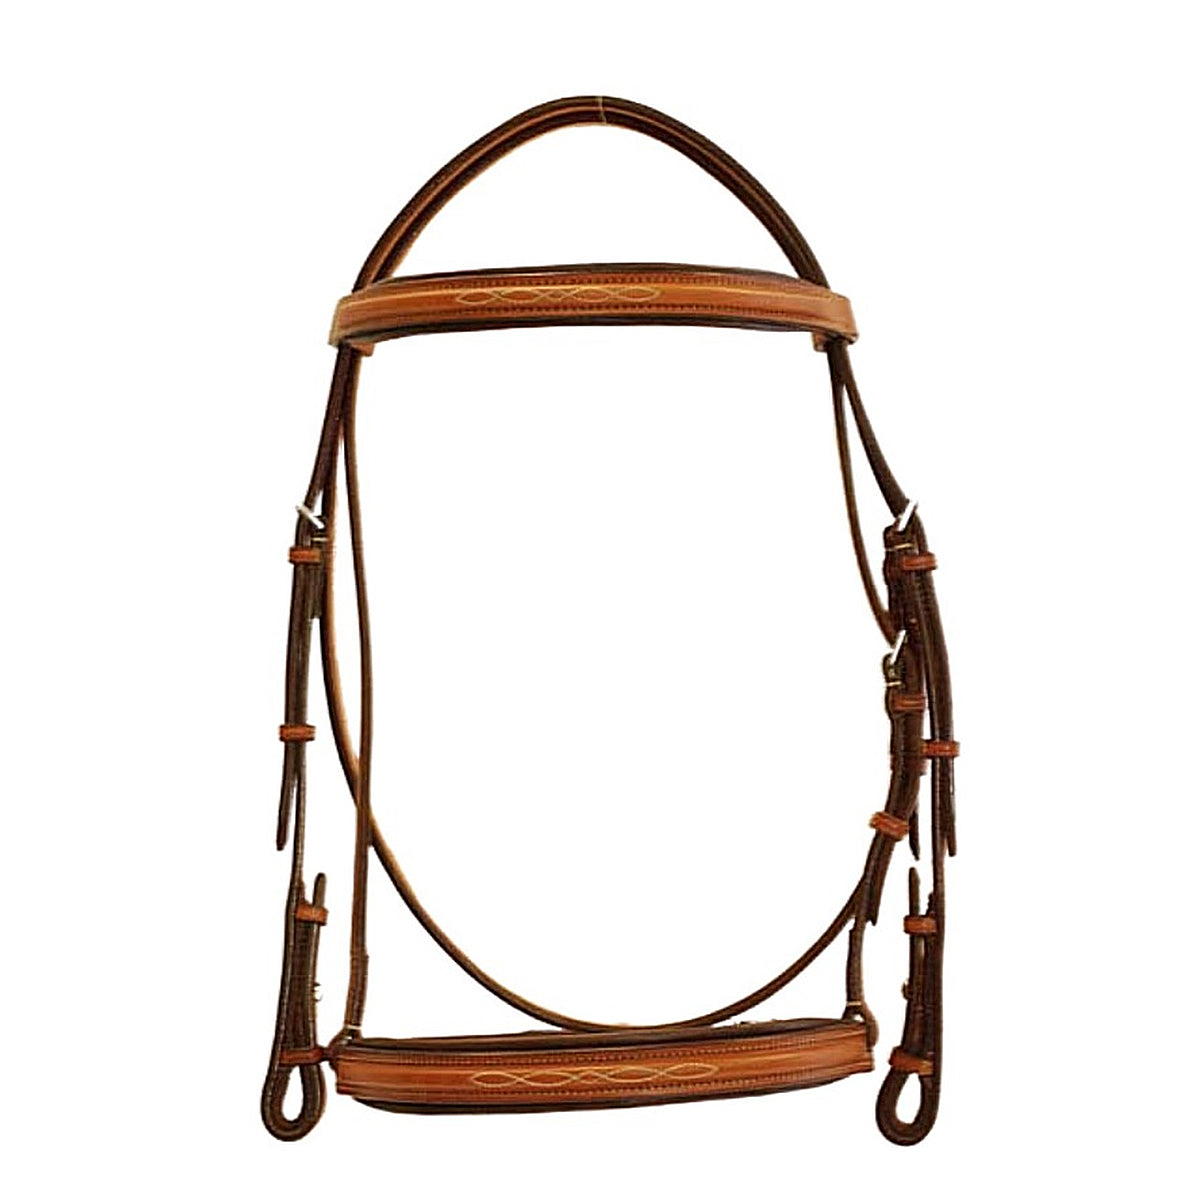 "Edgewood 3/4"" Fancy Stitched Padded Bridle"